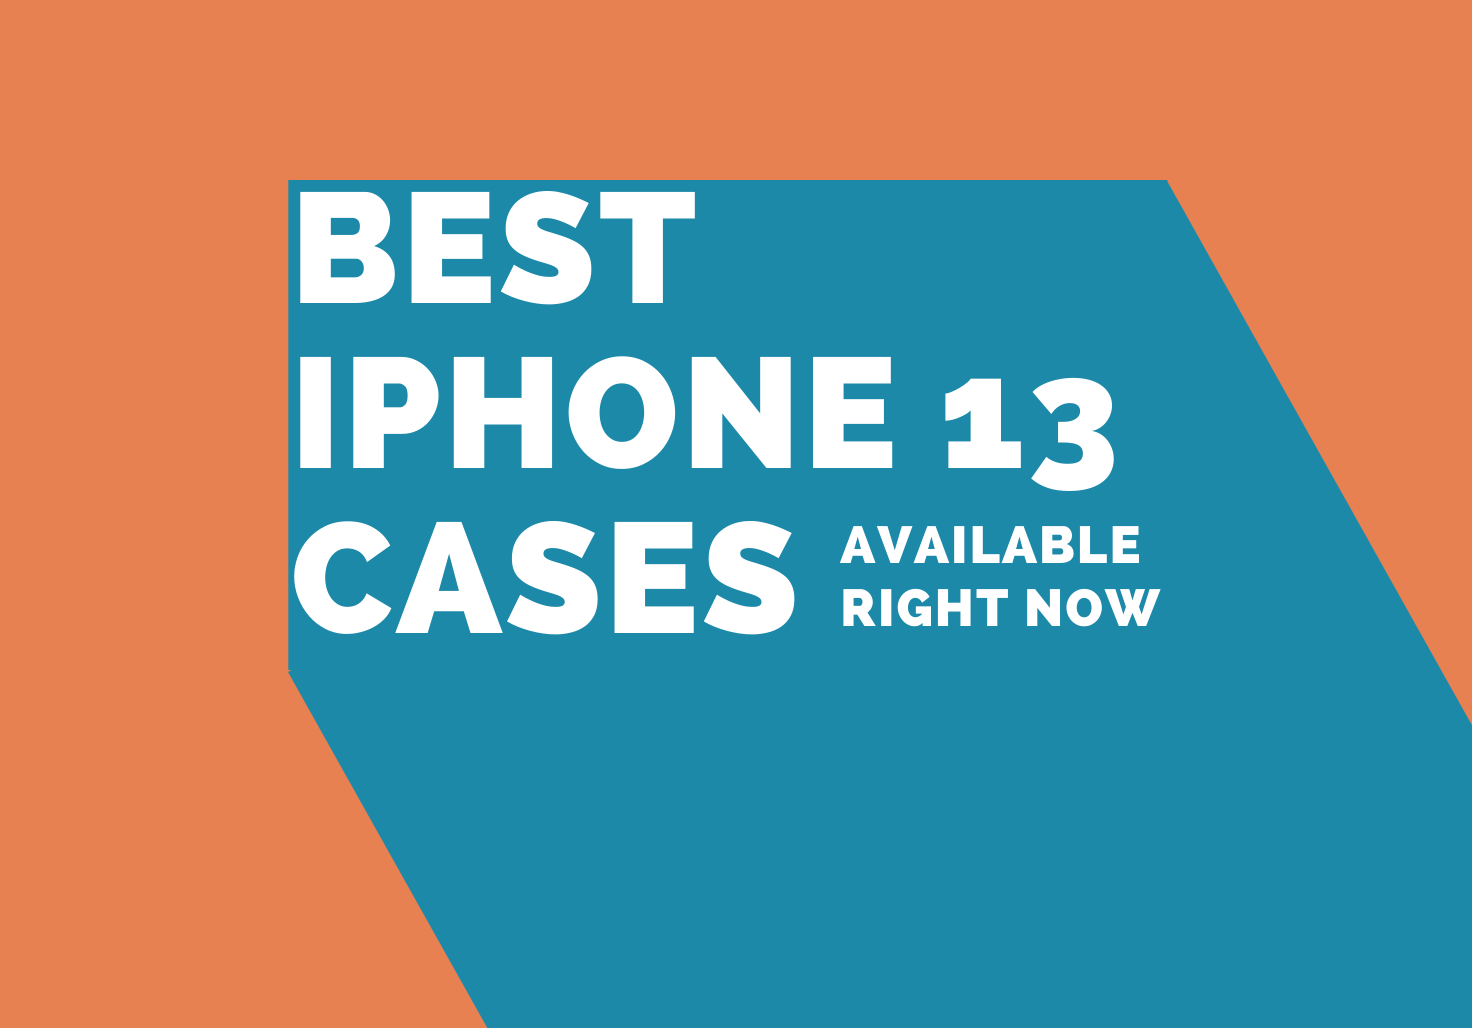 best iPhone 13 cases available now